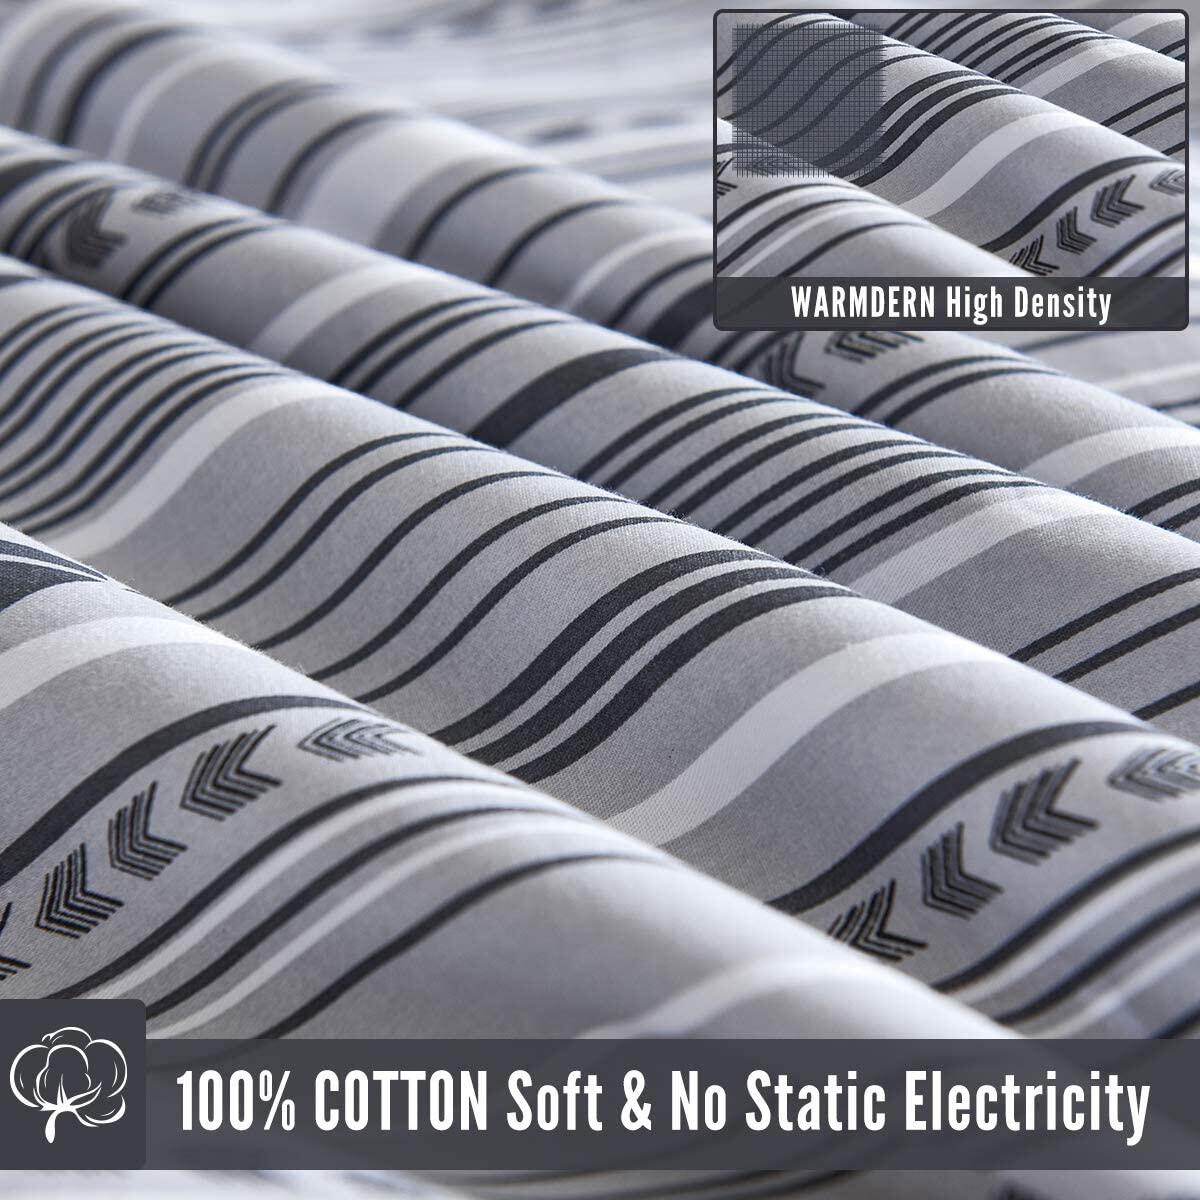 WARMDERN Duvet Cover Set Queen Striped 100% Cotton 3 Pieces Gray Geometric Soft Breathable Simple Style Bedding Set with Zipper Closure & Corner Ties, 1 Comforter Cover and 2 Pillowcase (Queen,Grey)